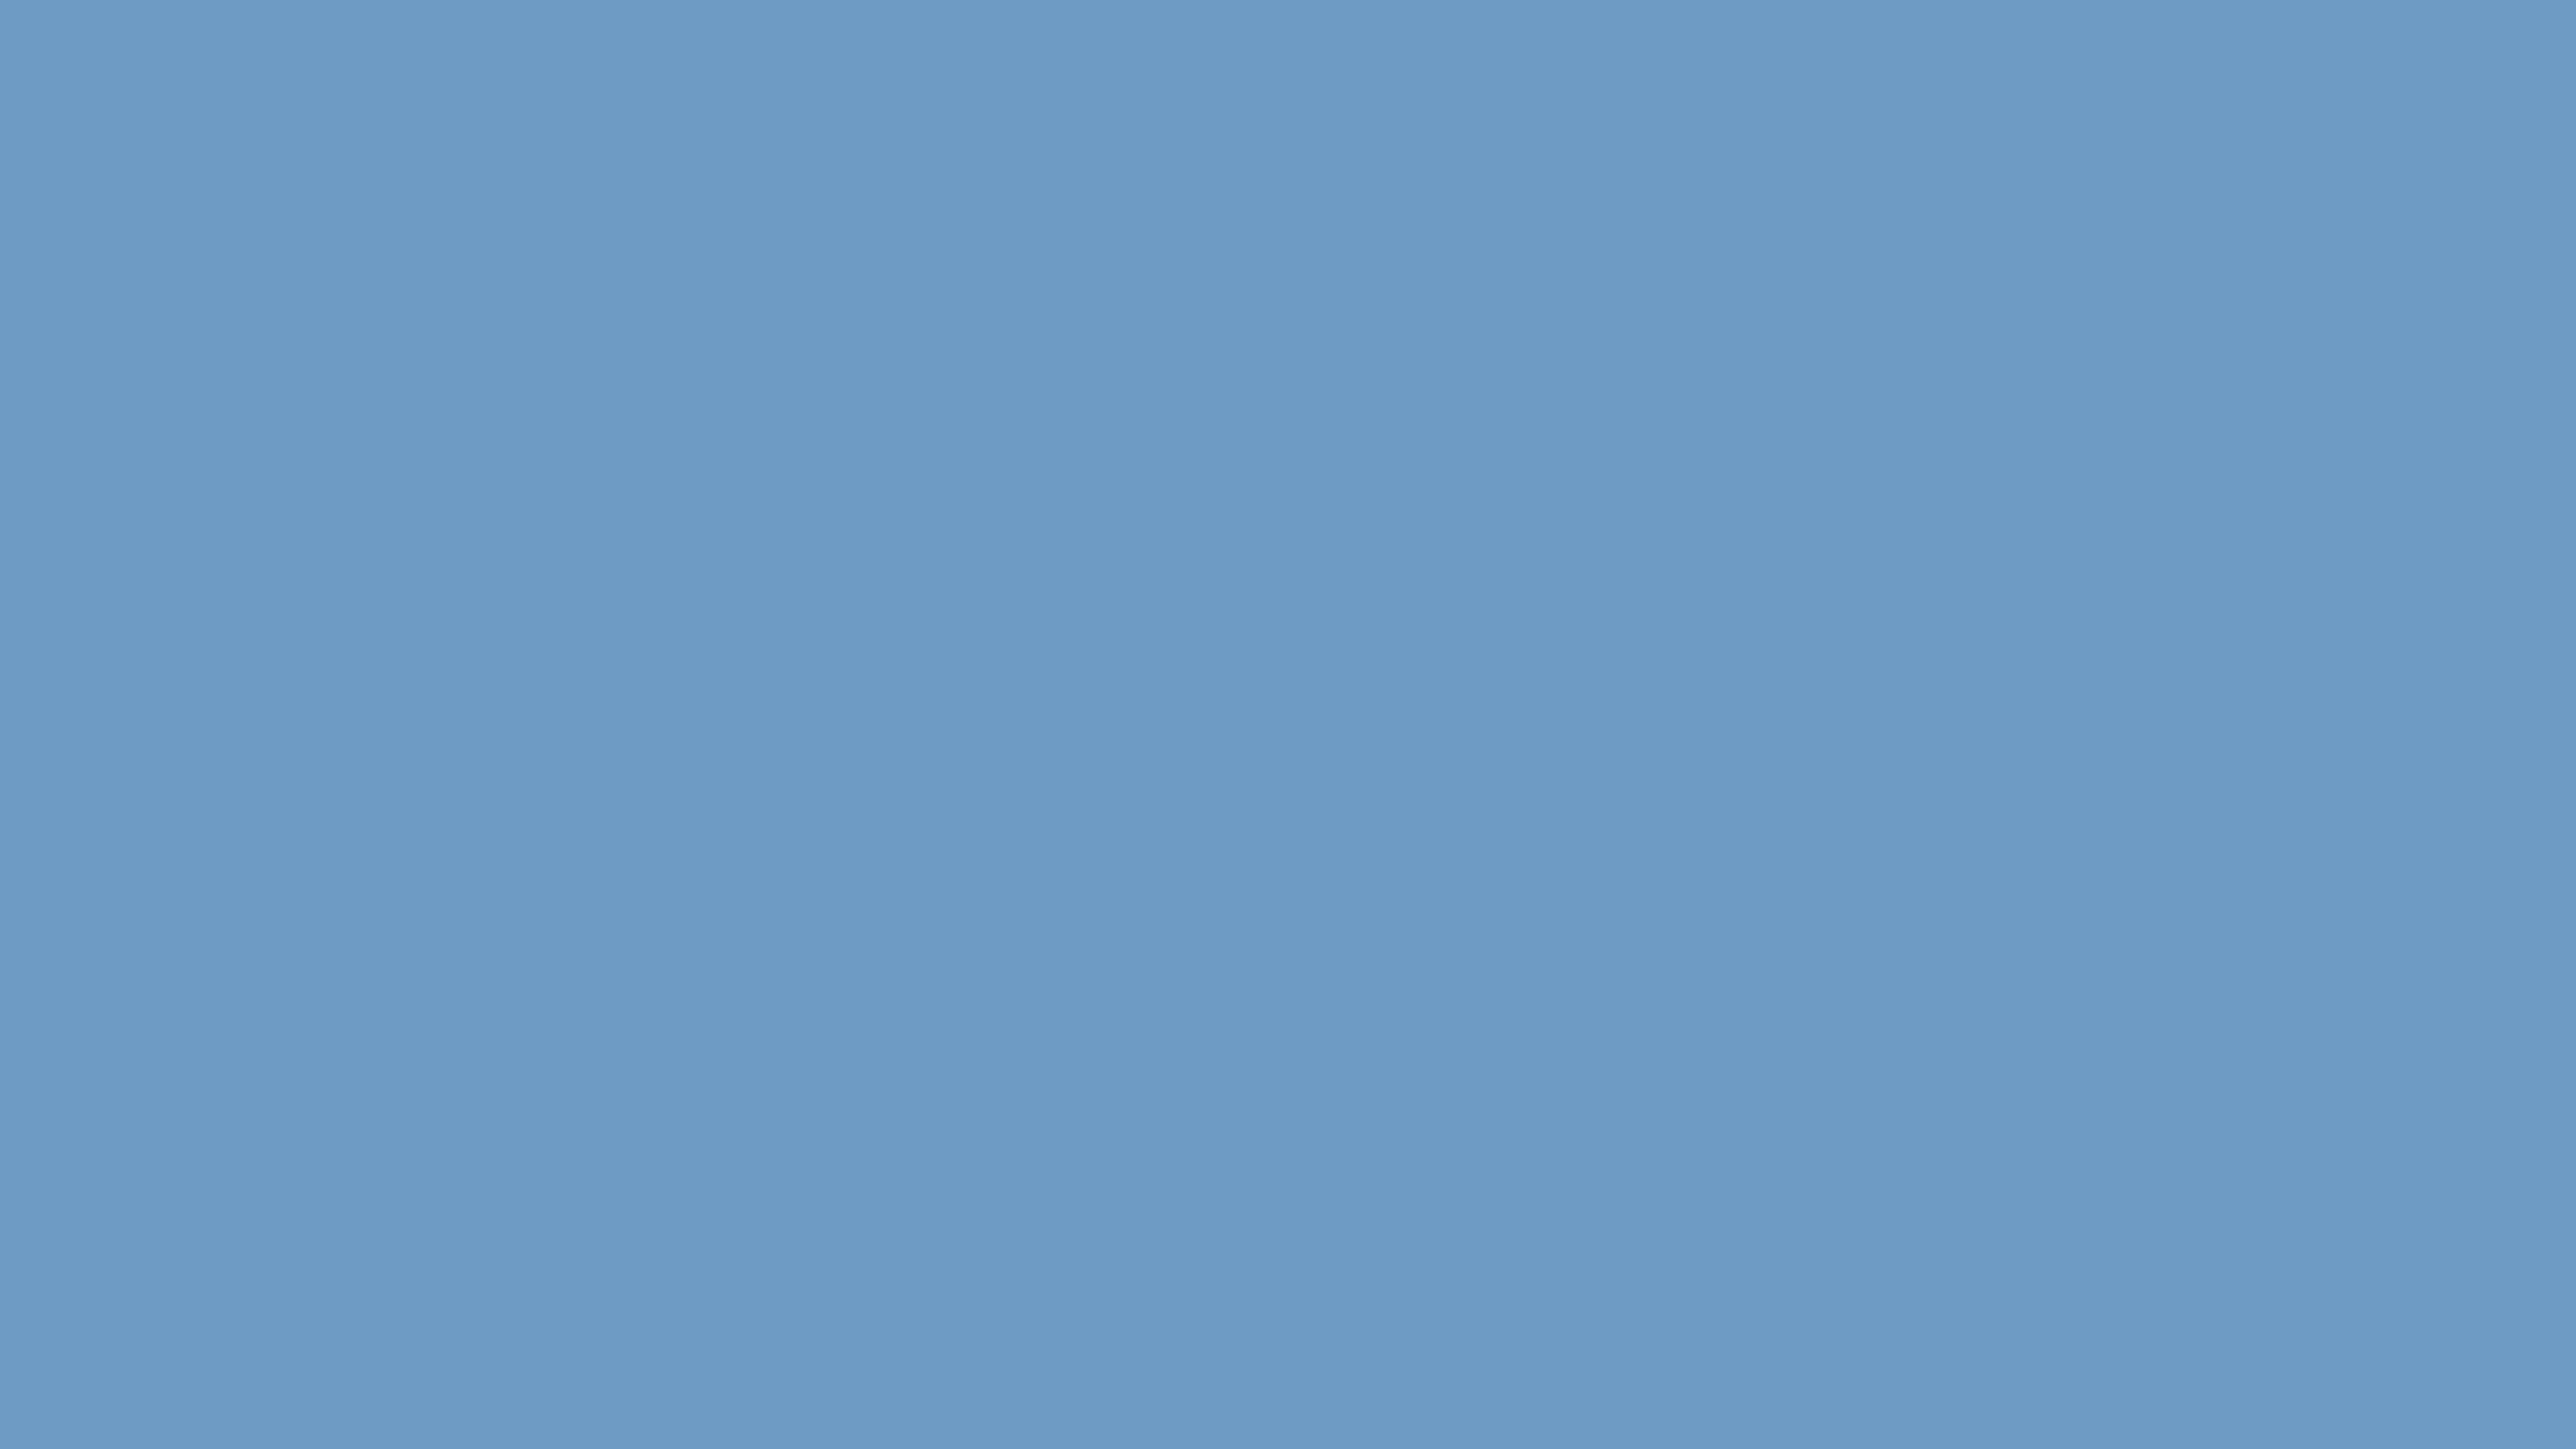 3840x2160 Cerulean Frost Solid Color Background